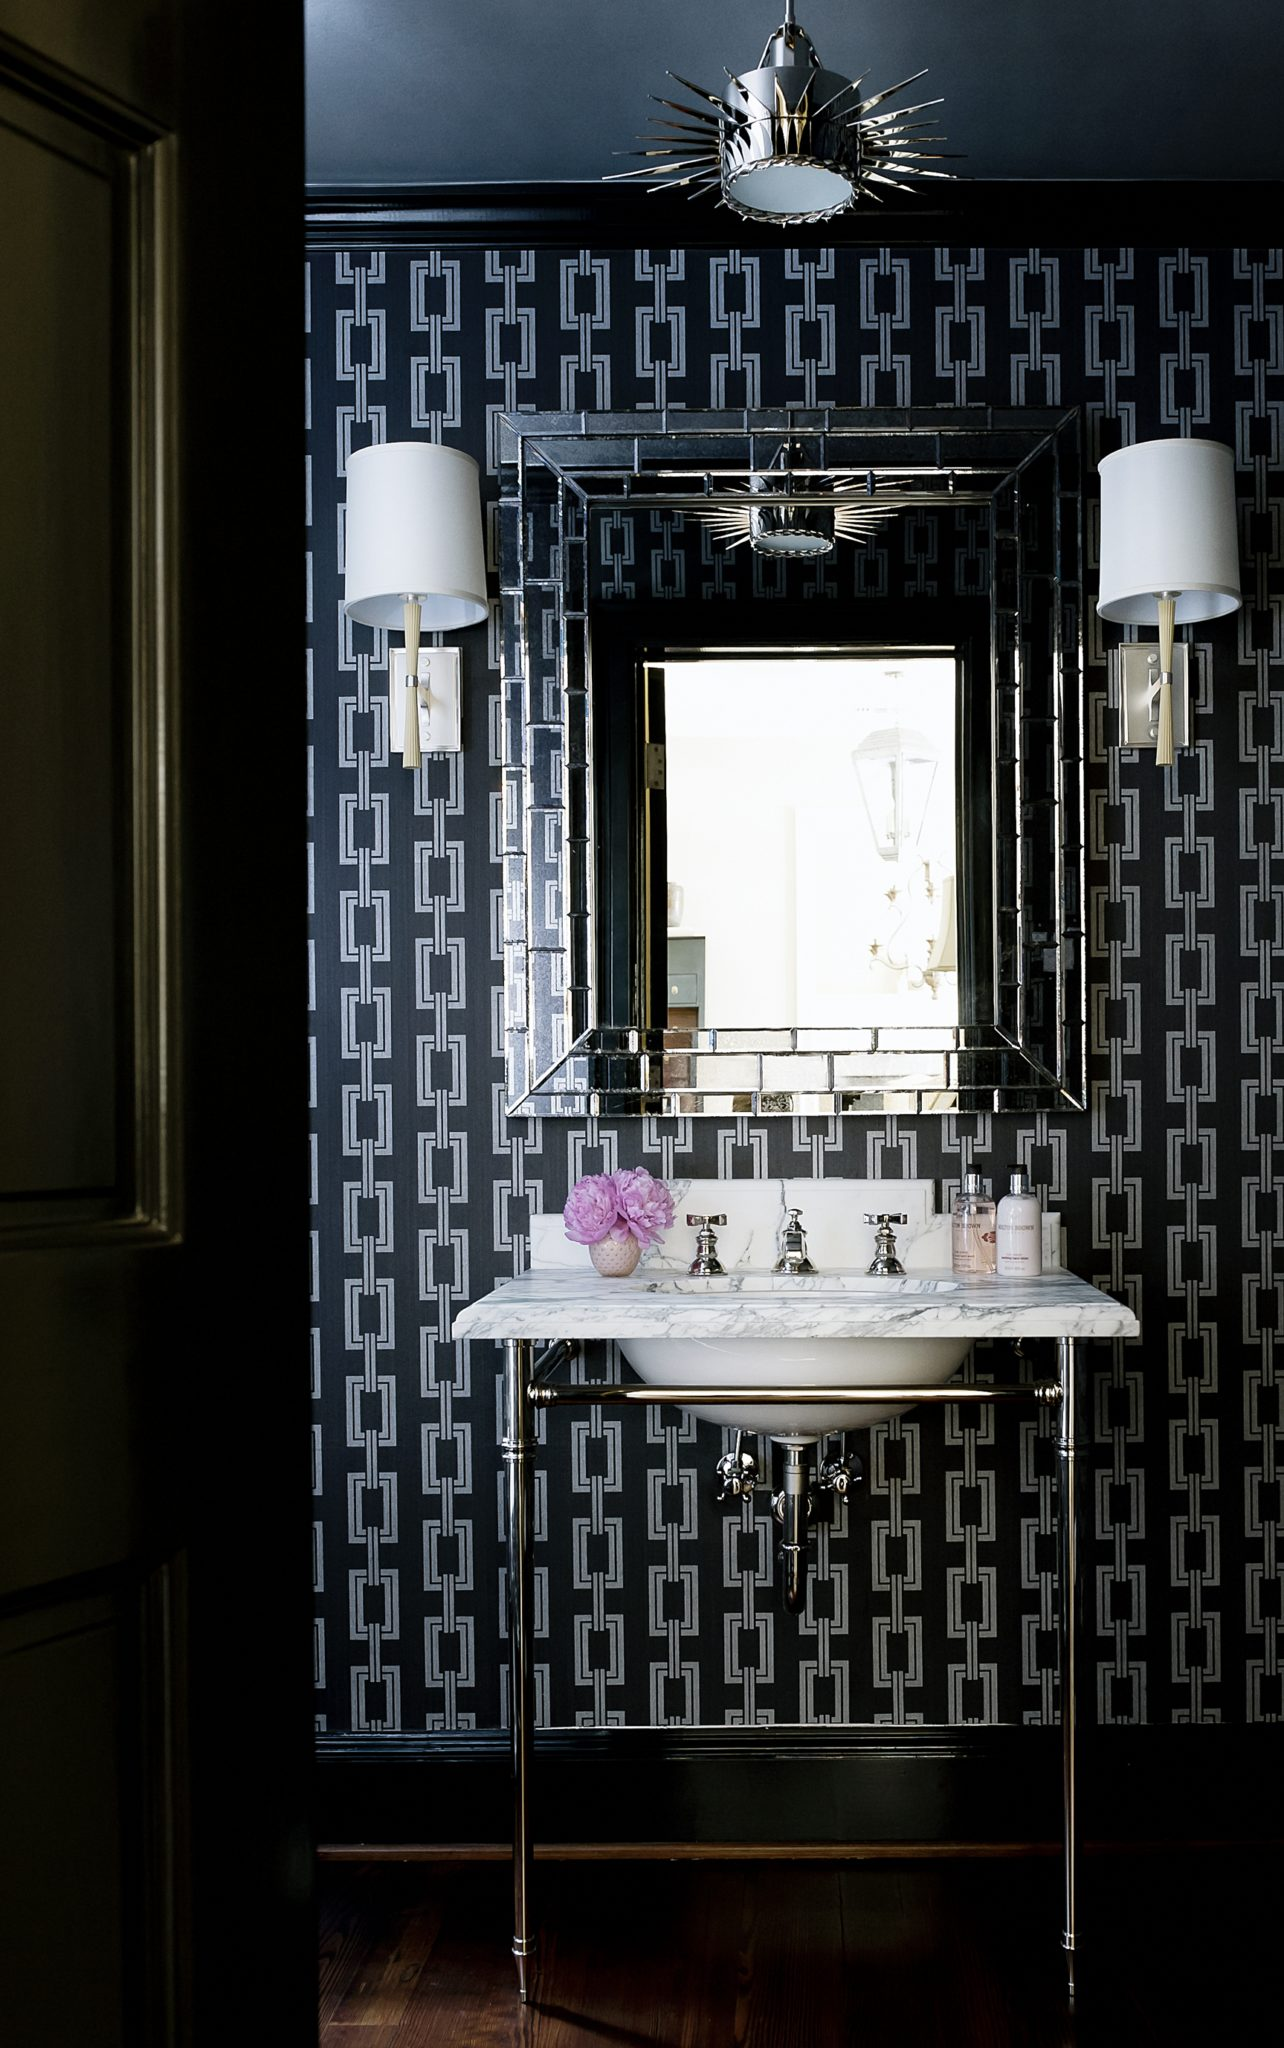 """""""We never want residents or guests to 'want' for anything."""" —Courtney Hill Interiors, Houston, TX  Favorite Finishing Touches: """"Fresh flowers, art, and accessories. In the bathroom, monogrammed linen hand towels, a pretty tray for guest towels, a bud vase, and luxurious hand wash and lotion.""""  Design Advice: """"Since this space [pictured above] is a powder room at the end of a hallway, we wanted the design to be impactful with all of the elements deliberate and well thought-out. The finishing touches are held in all of the juxtapositions throughout the space – the soft pink flowers and rose scented soap against the anthracite walls; the silk sconce shades against the rigid design of the wallpaper; and the feminine qualities of the accessories against the edginess of the angles in the room. We always strive to leave a space feeling functional, comfortable, and lived in. We never want residents or guests to 'want' for anything – in a bathroom, there should be good lighting, fragrances, soaps, hand towels, etc. Additionally, a lack of art and accessories are evidence of an incomplete space."""""""